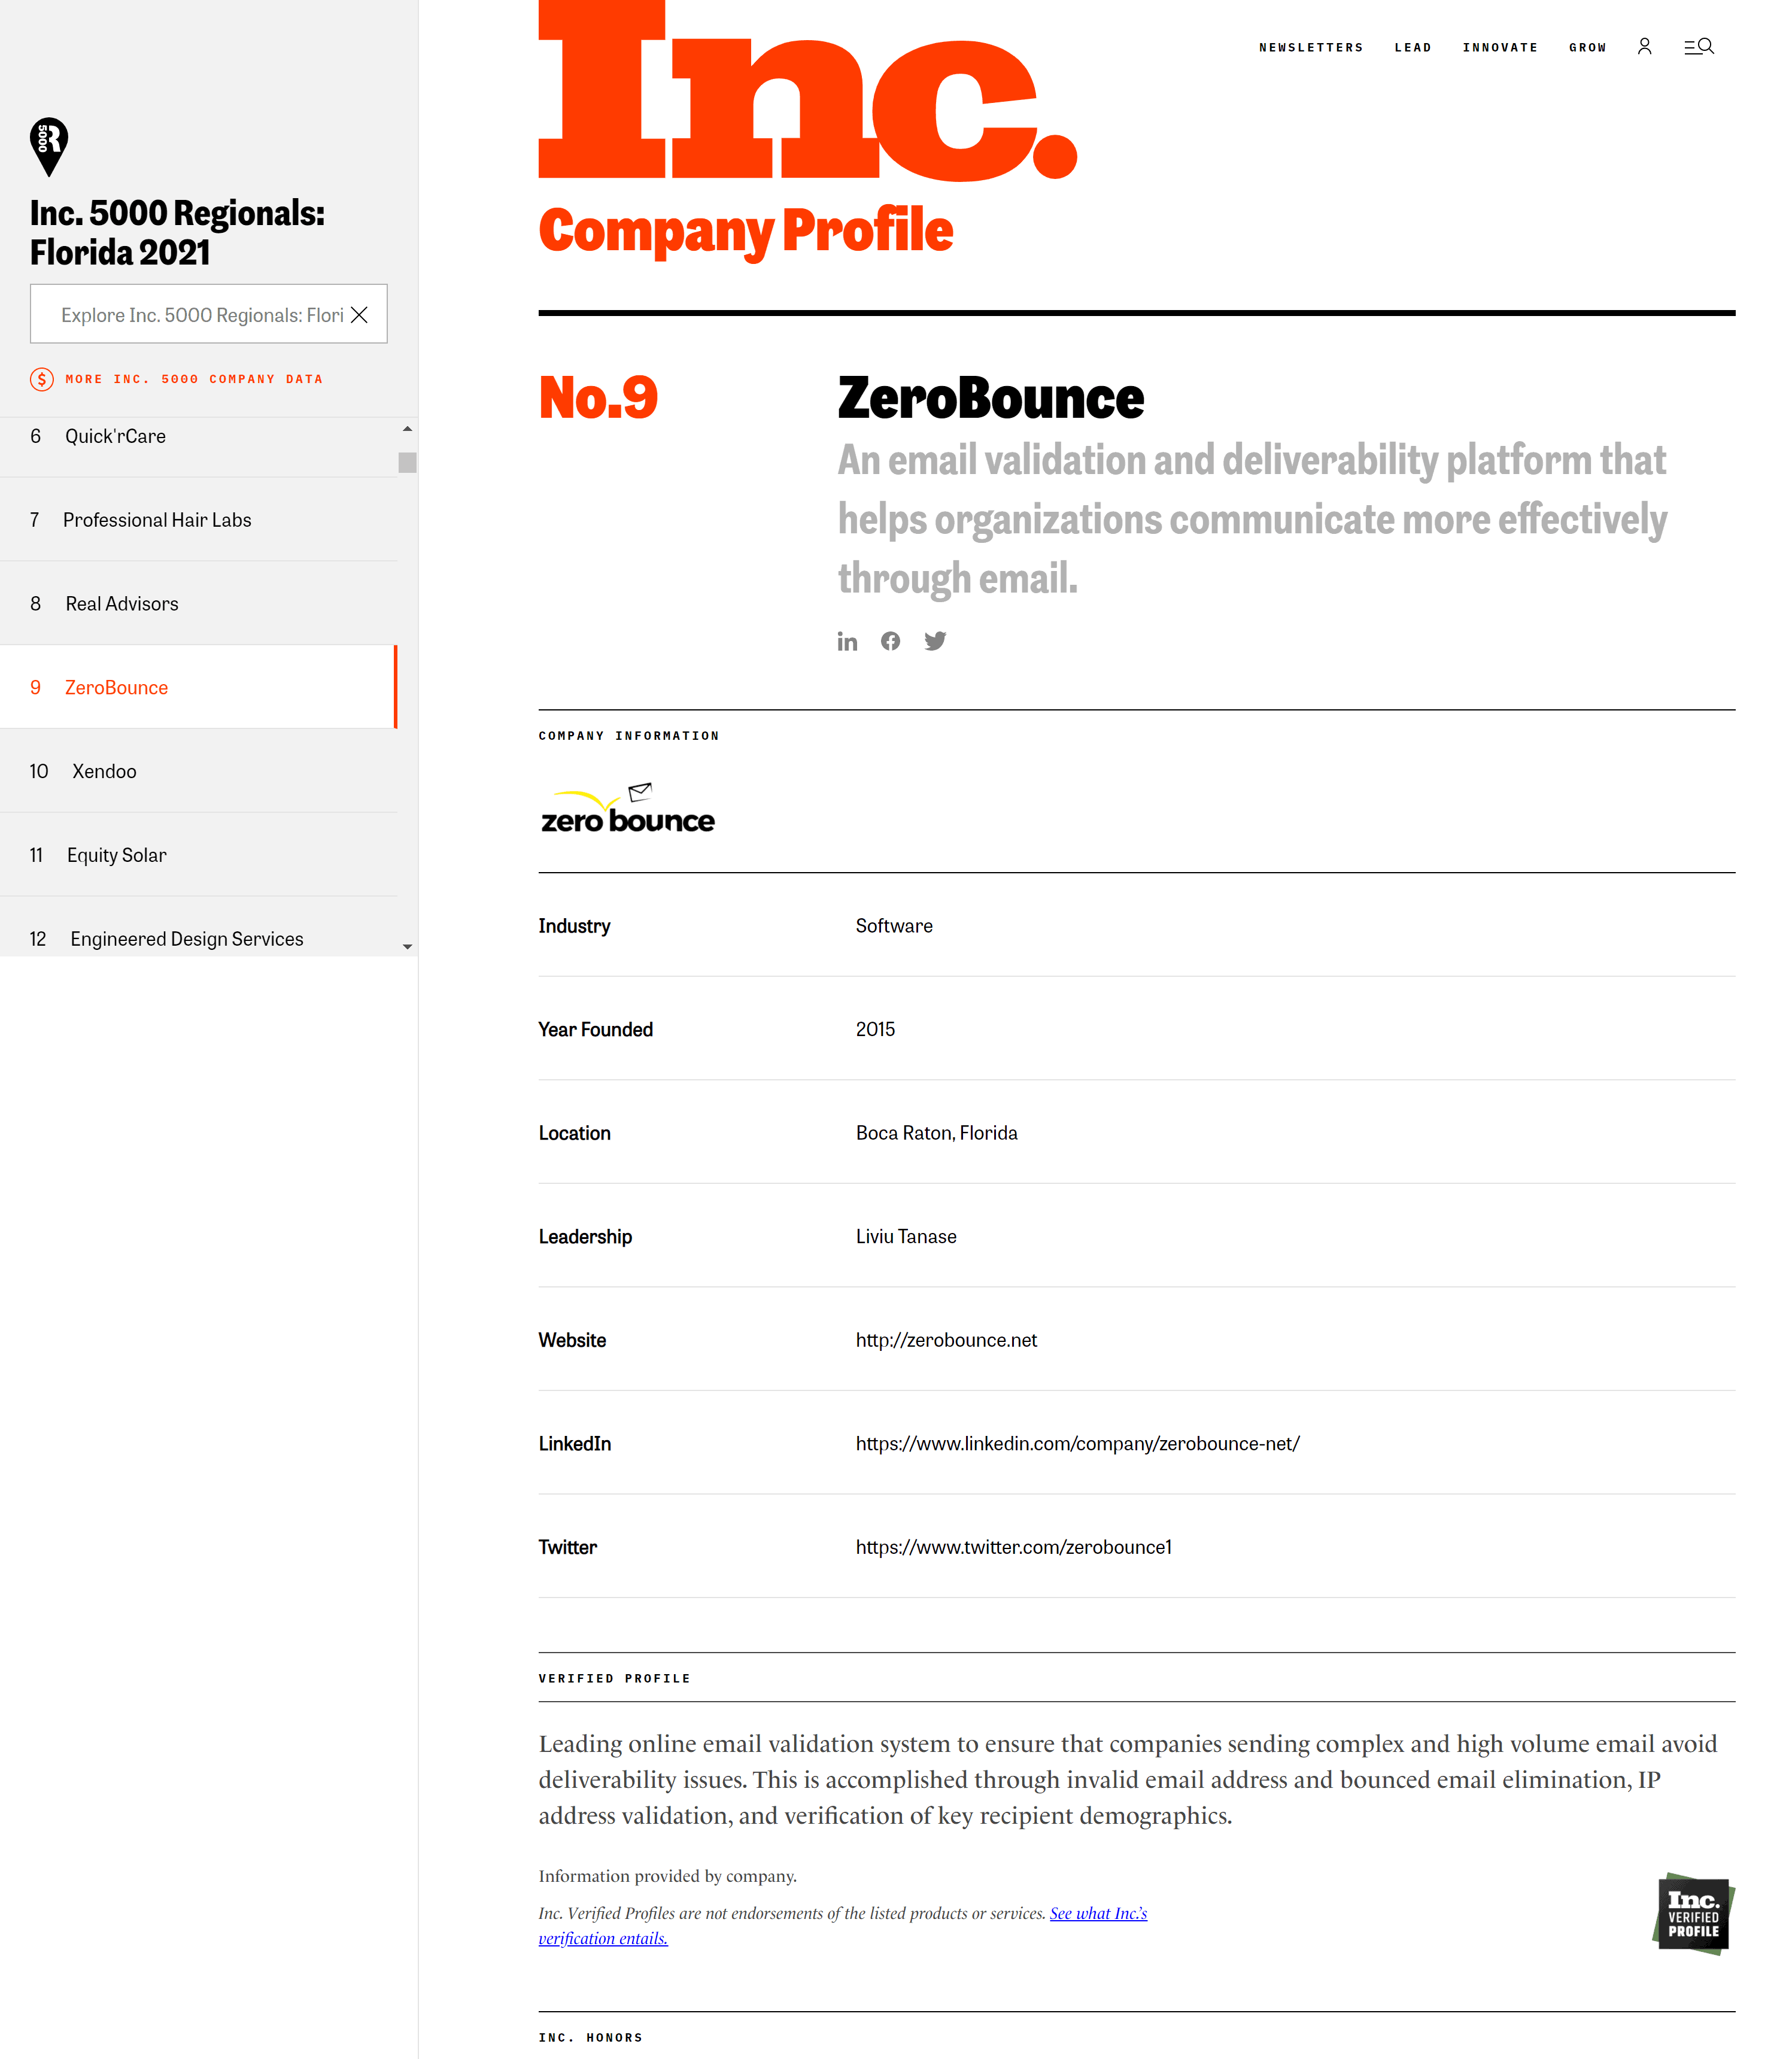 Zerobounce on Inc